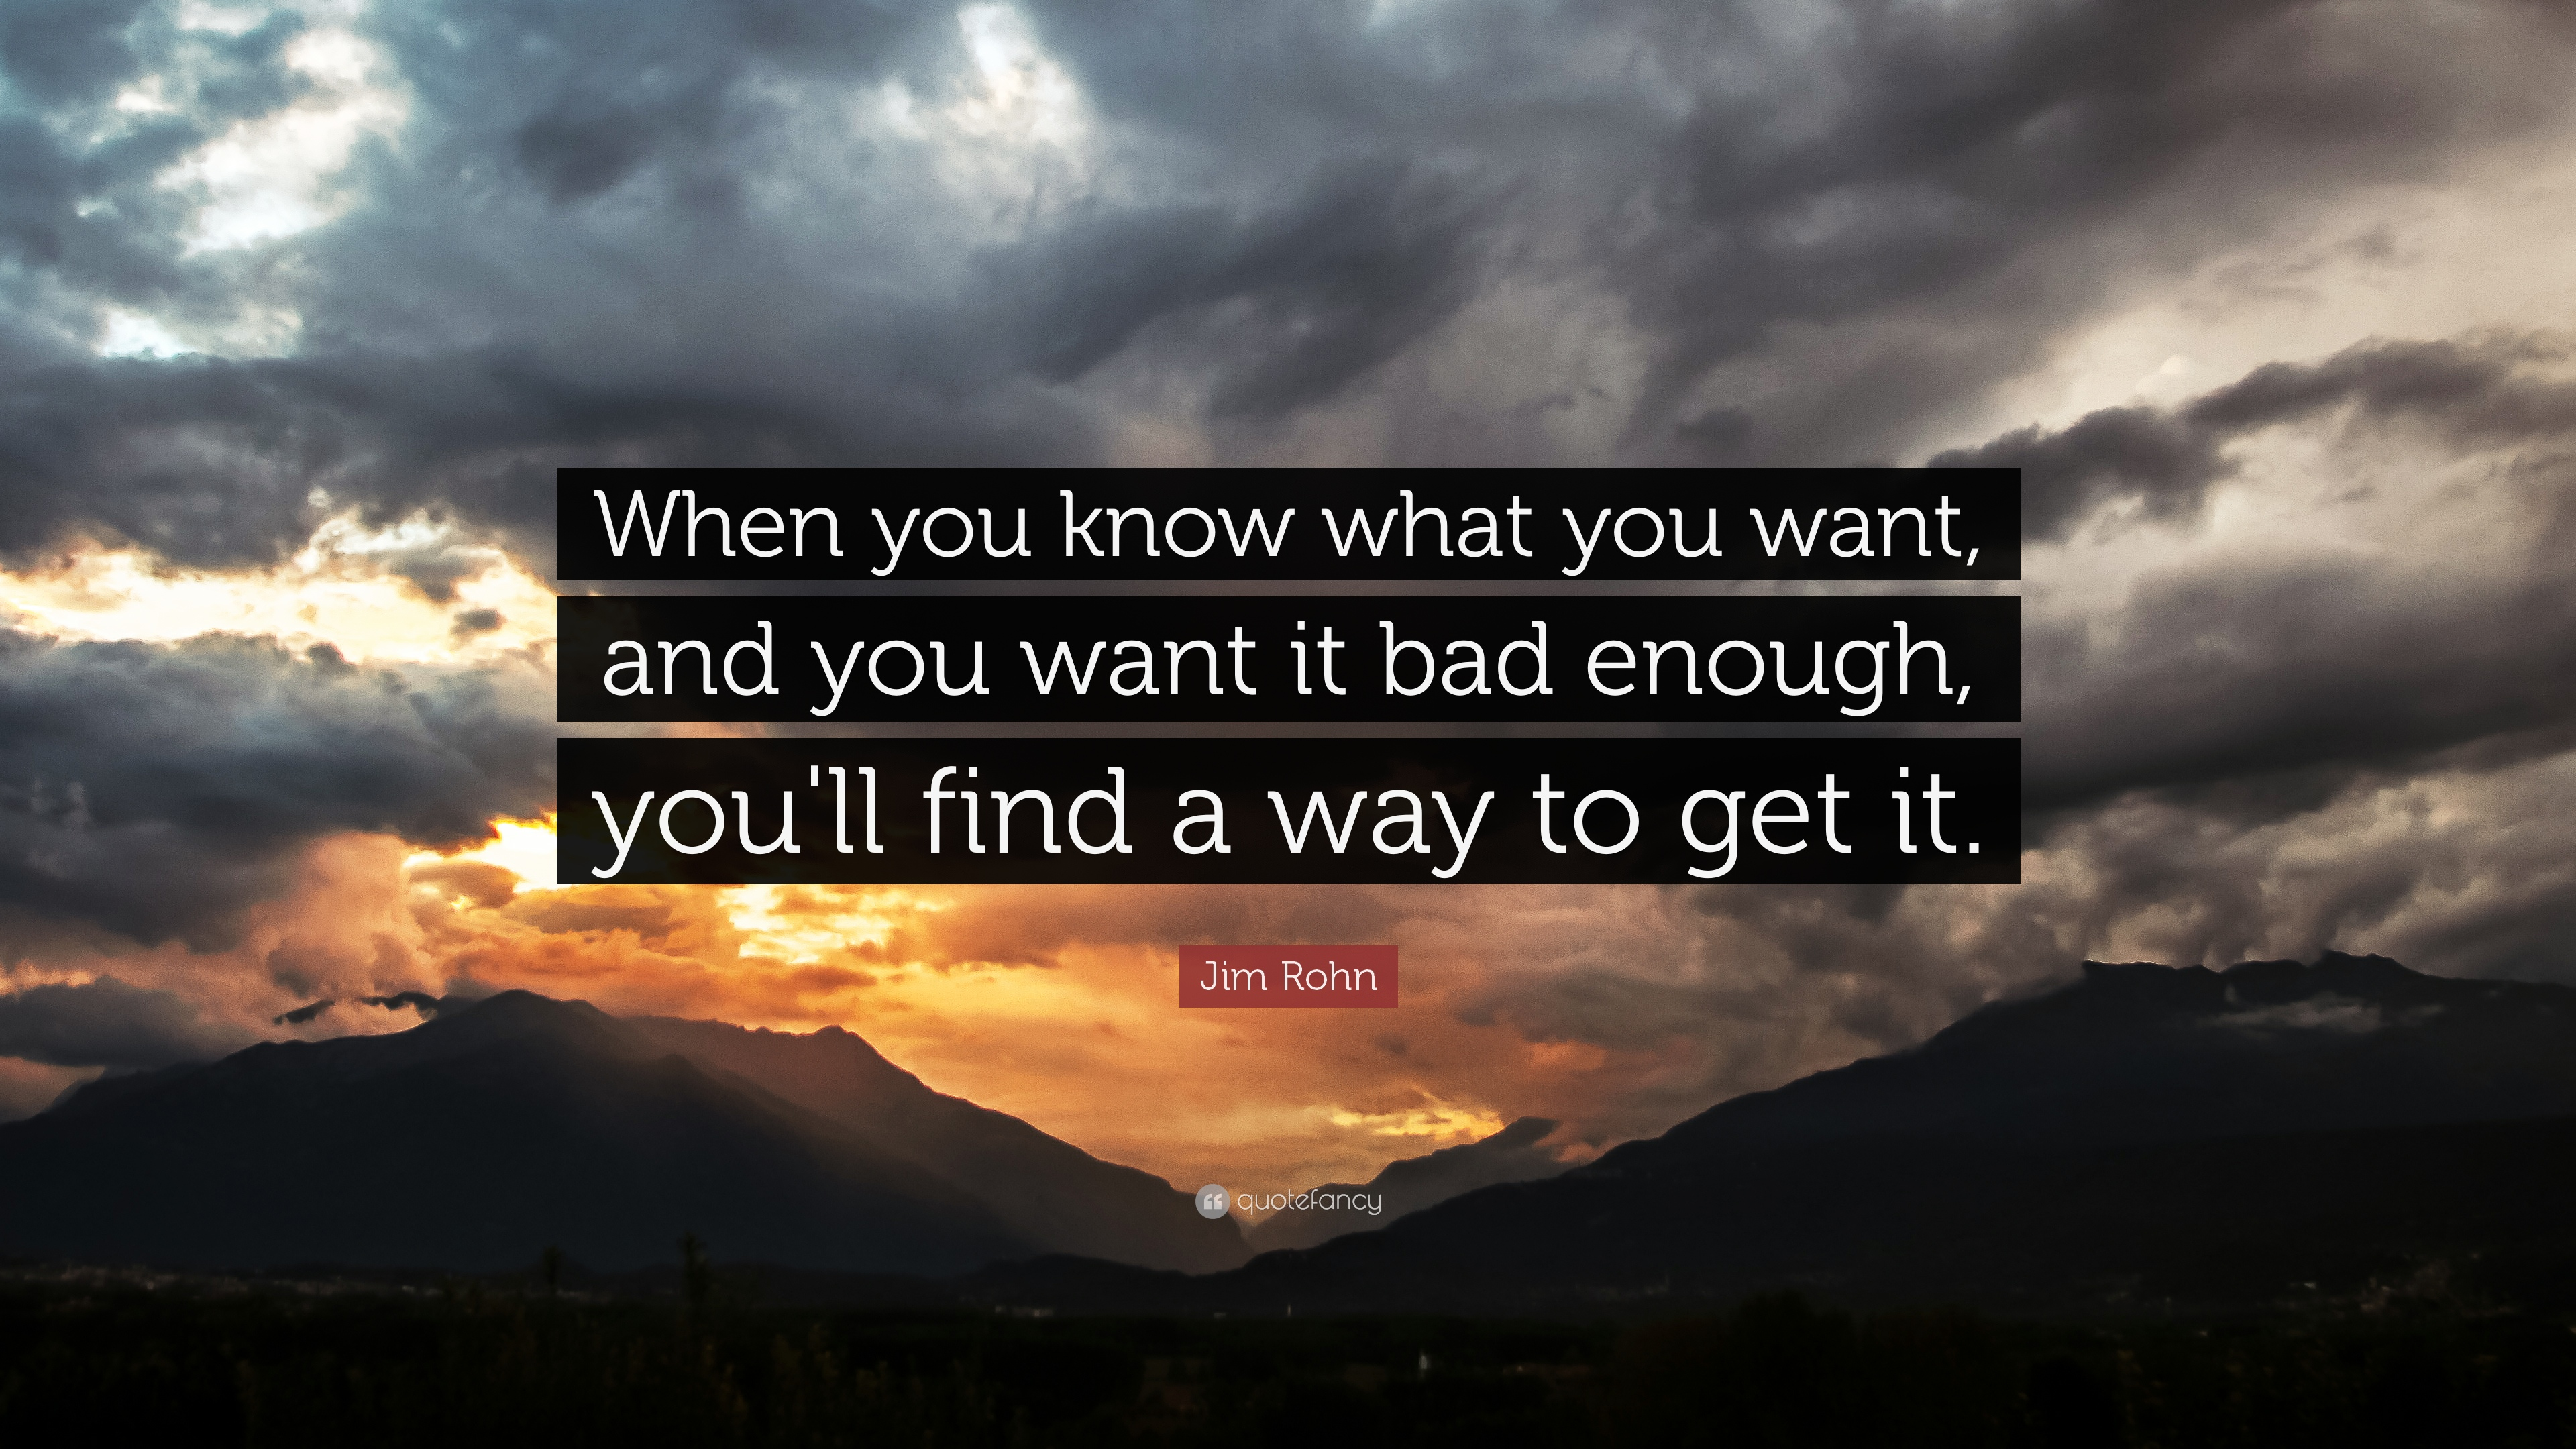 Jim Rohn Quote When You Know What You Want And You Want It Bad